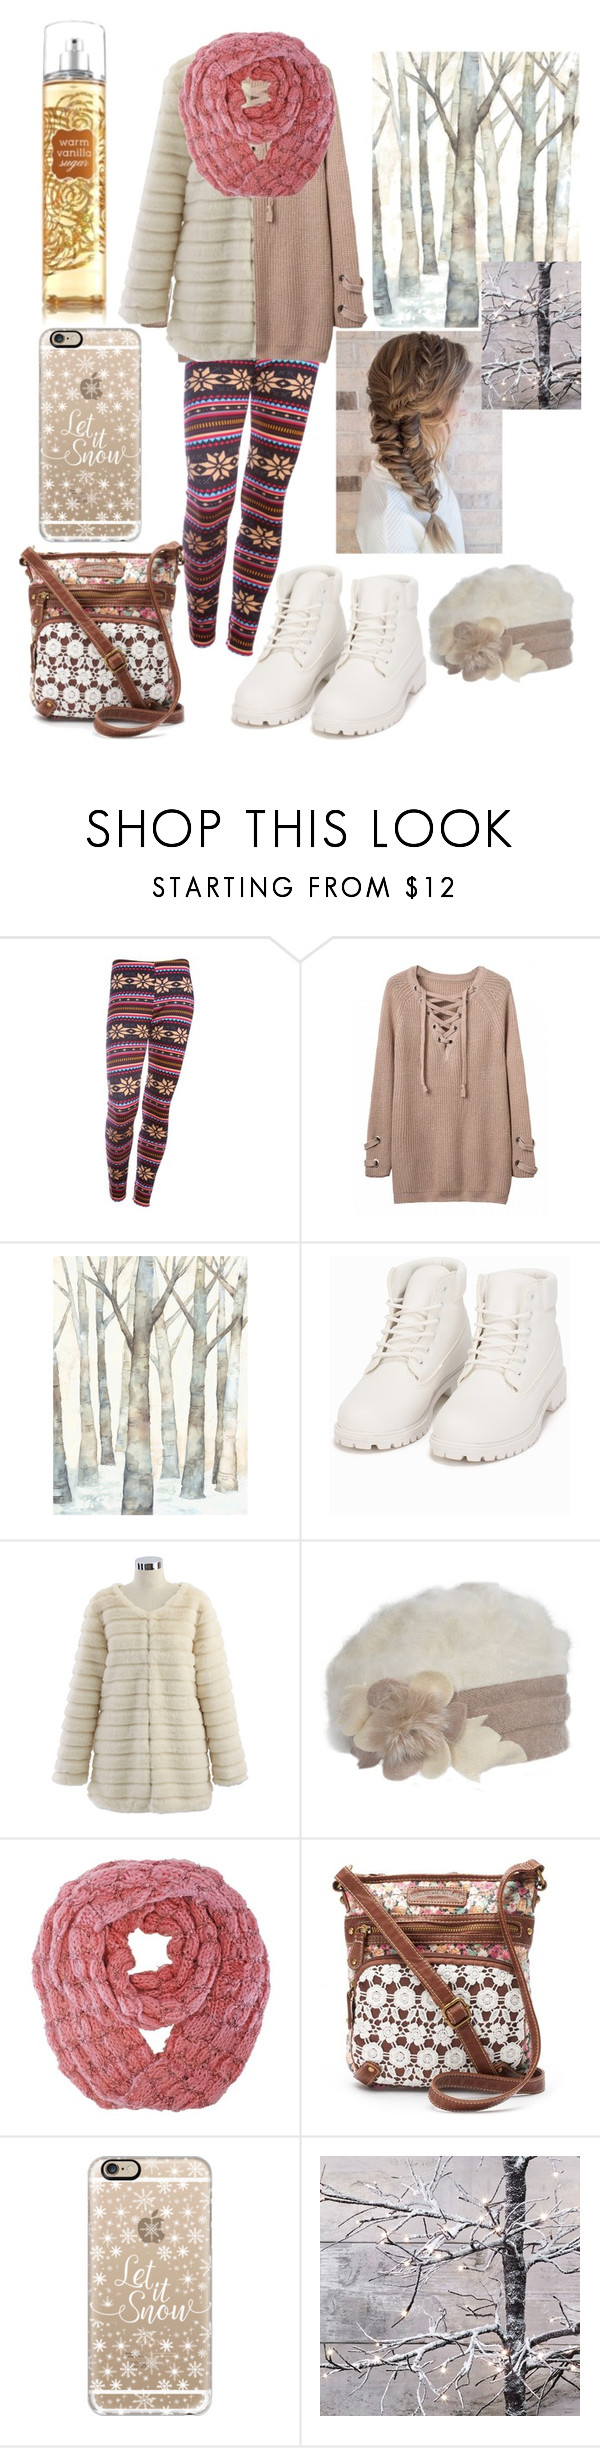 """""""Light winter"""" by ingridmv ❤ liked on Polyvore featuring Nly Shoes, Chicwish, UNIONBAY, Casetify, Winter and light"""